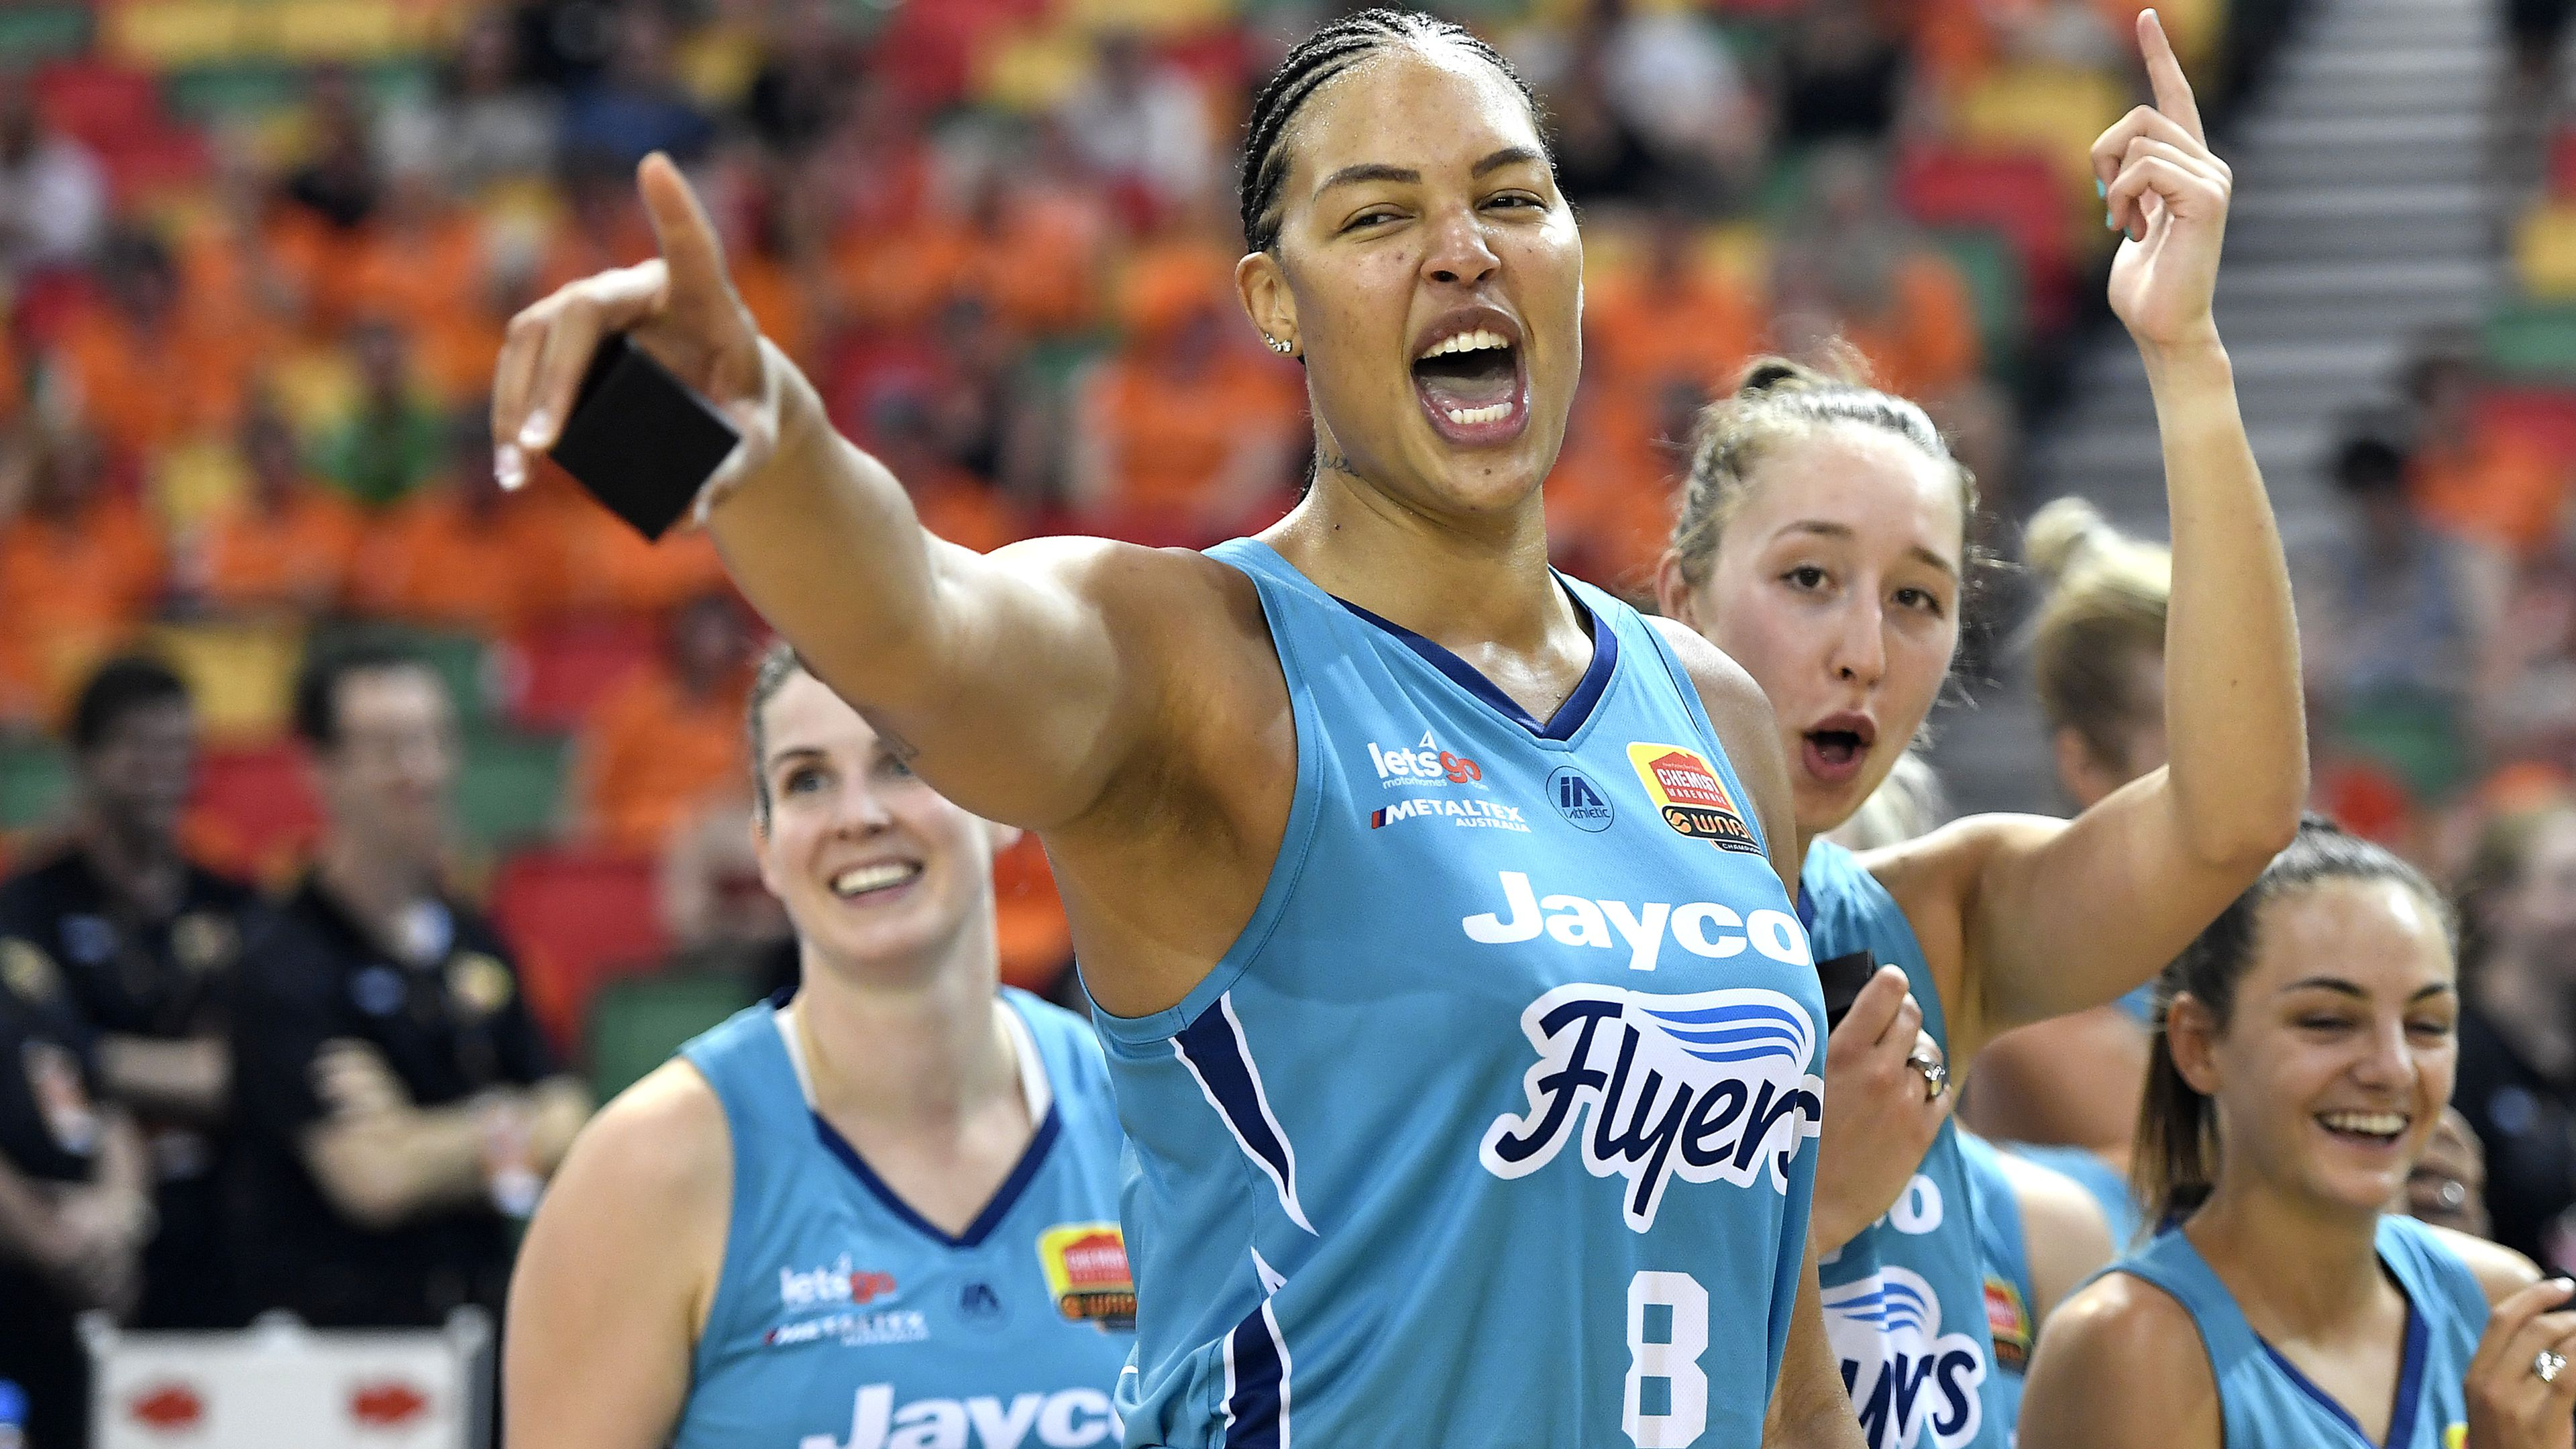 Liz Cambage and Jenna O'Hea are WNBL champions again - this time for the Southside Flyers